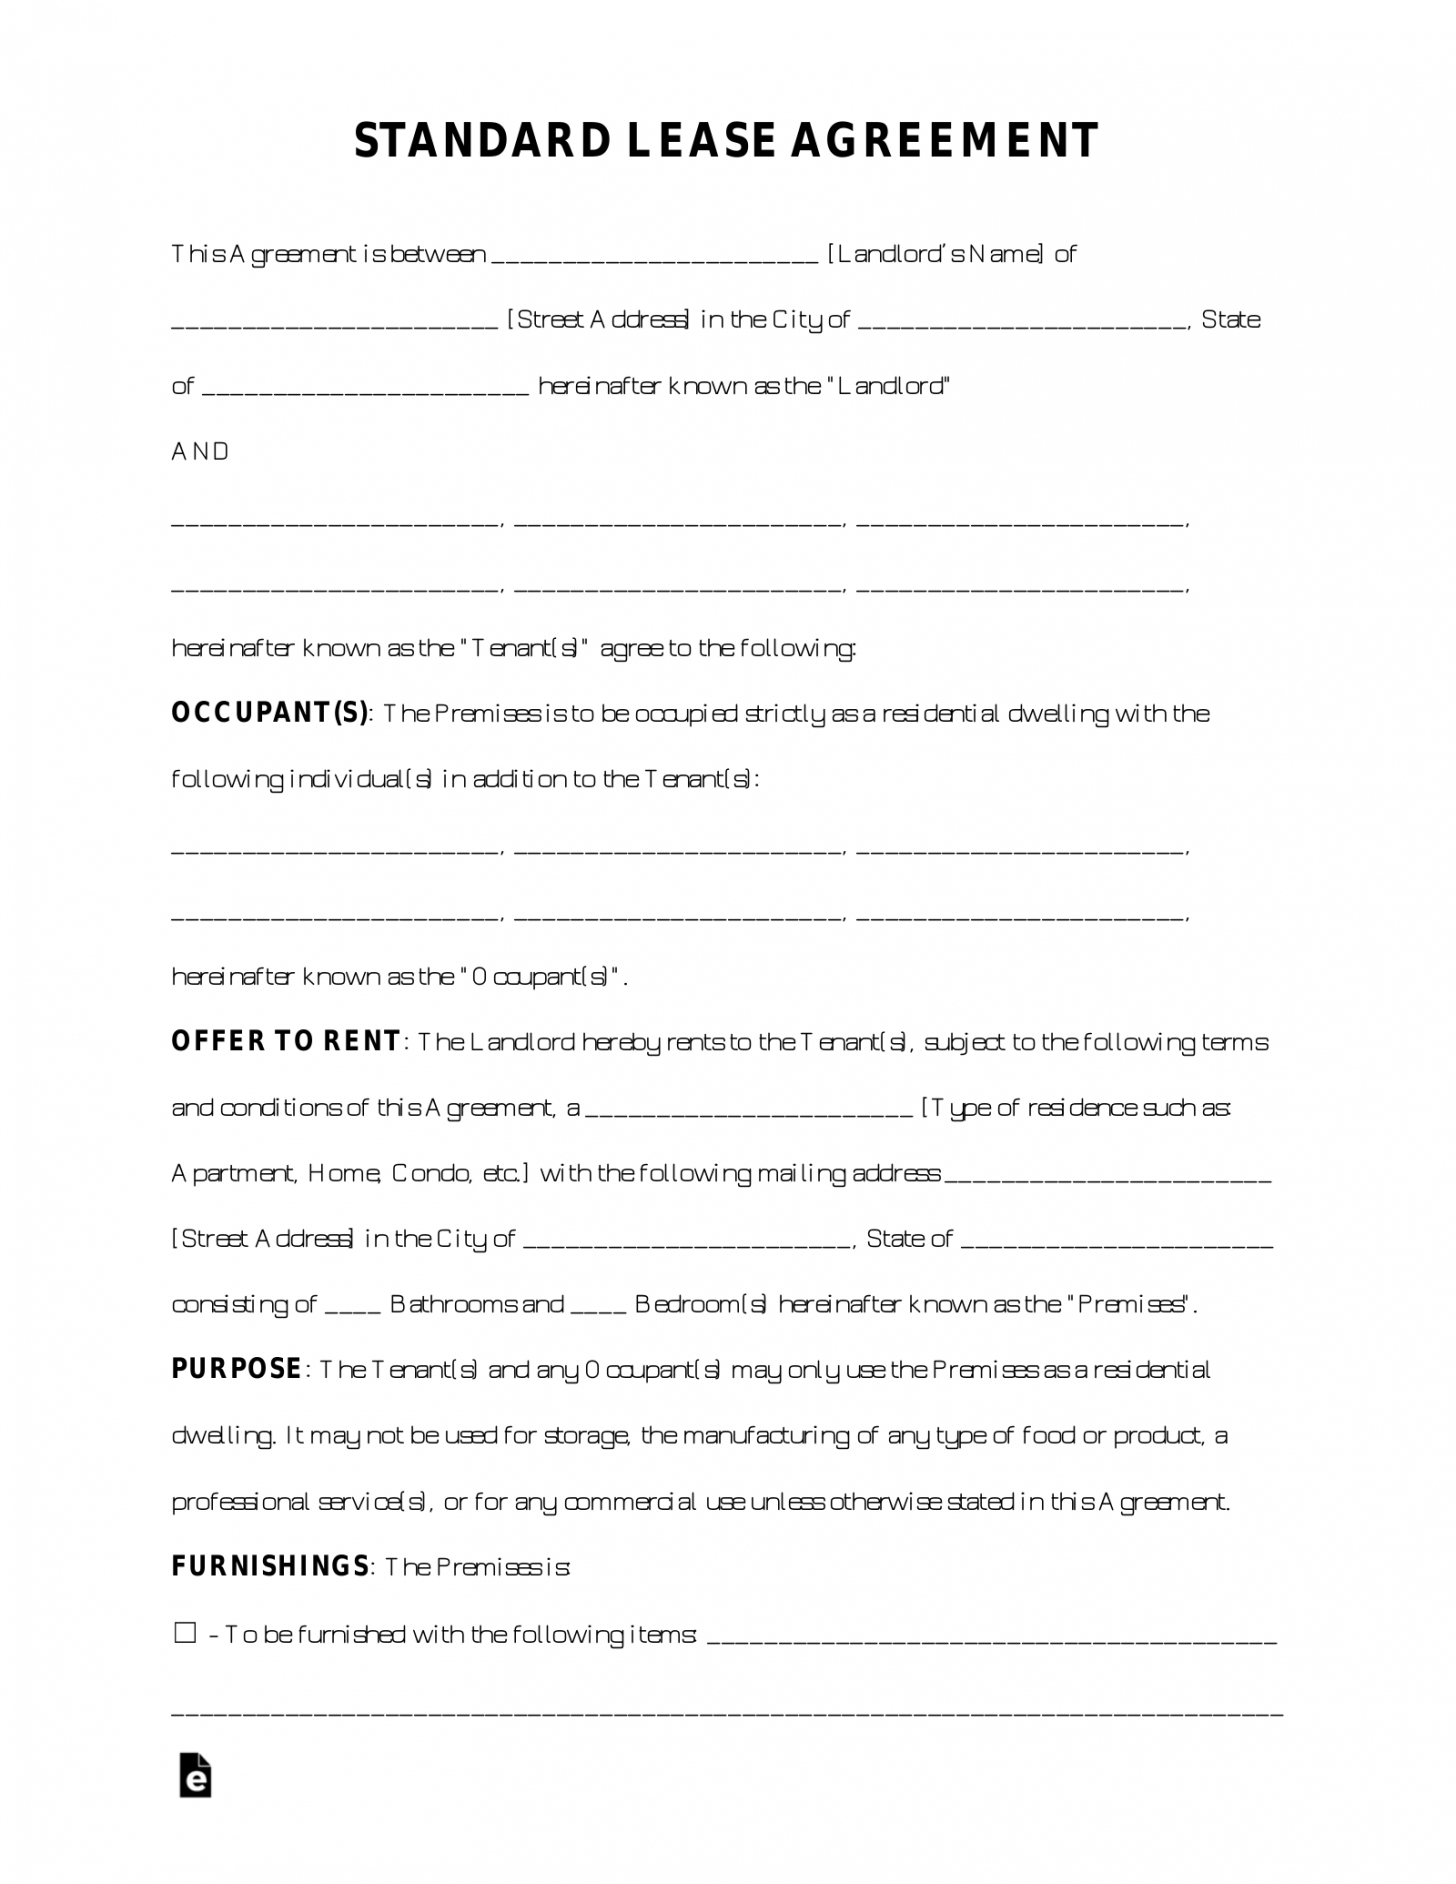 editable free standard residential lease agreement template  pdf standard residential lease agreement template doc